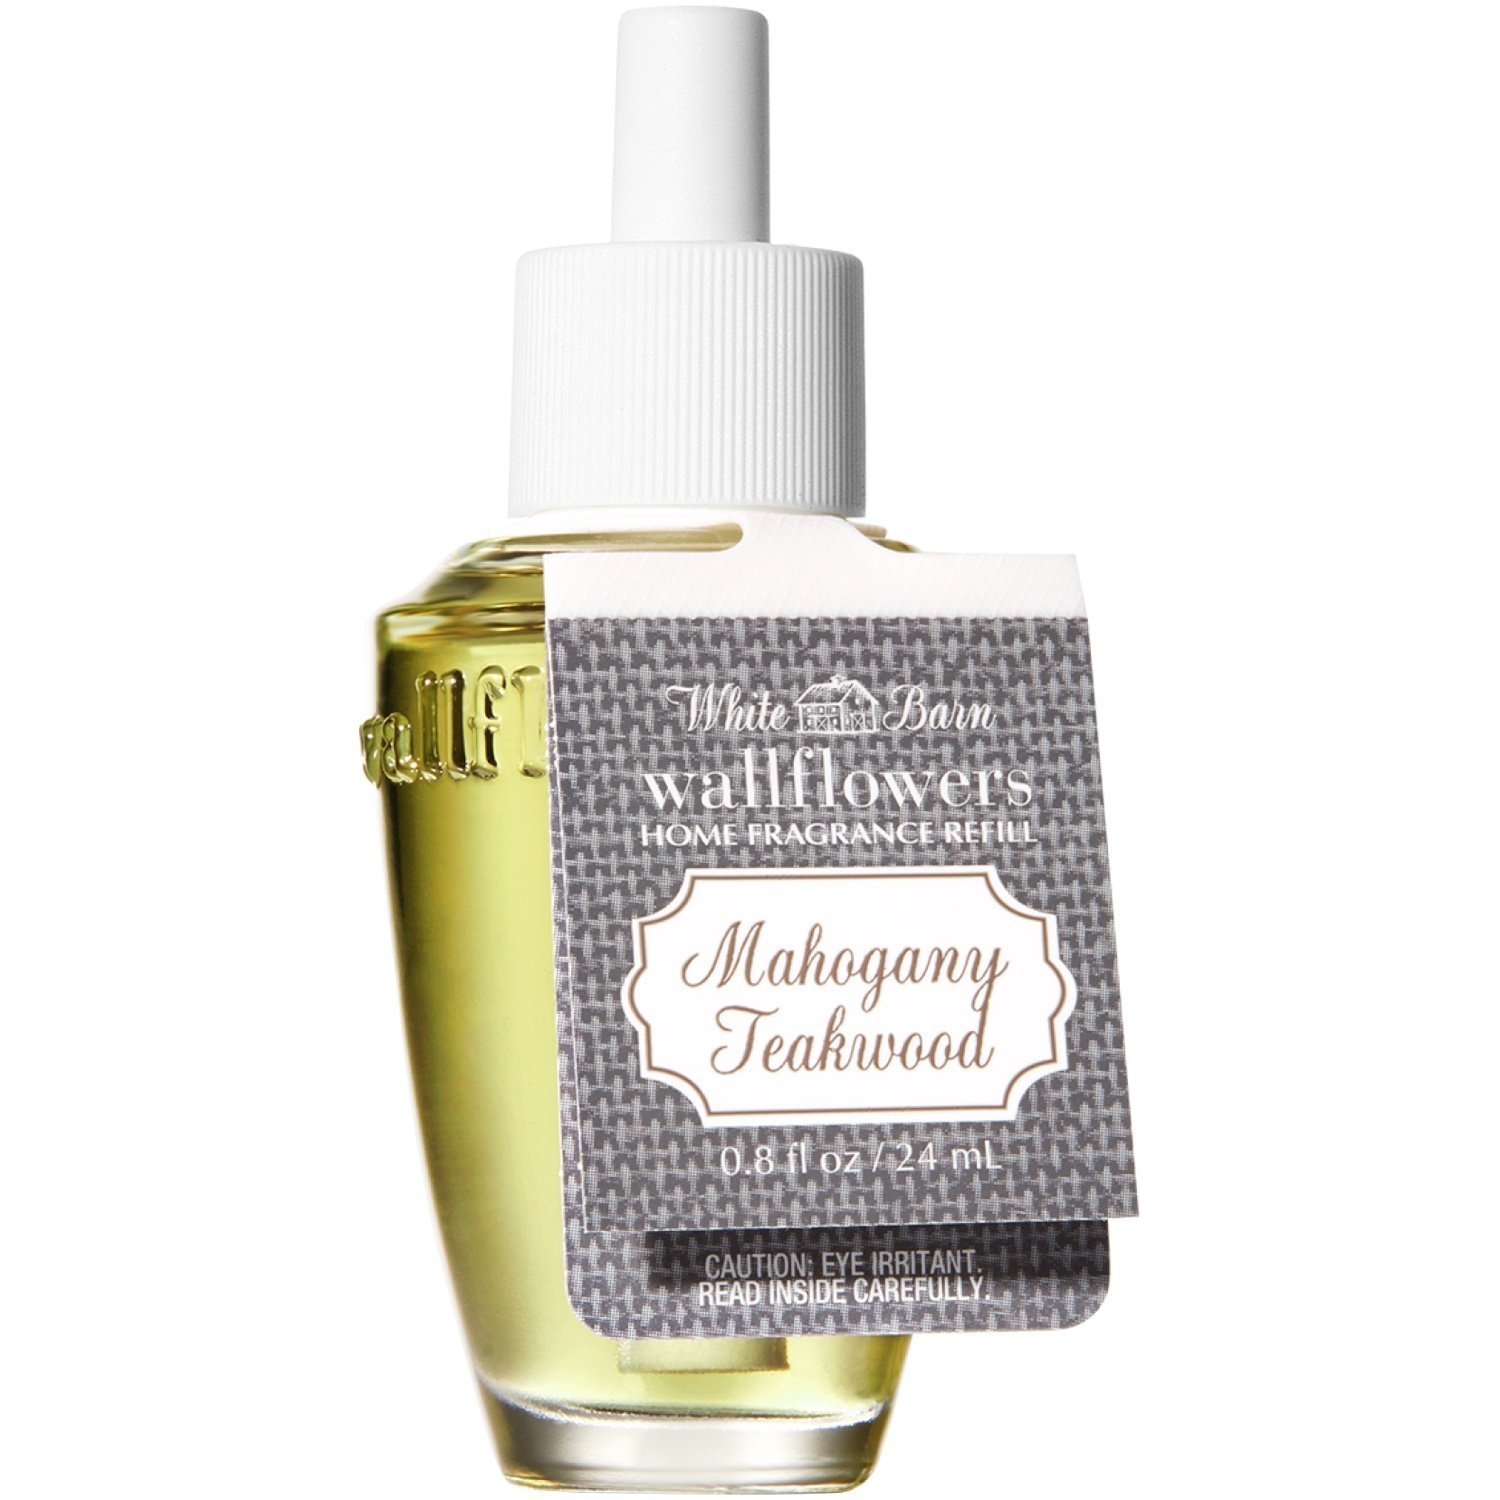 White Barn Bath and Body Works Wallflowers Refill New Look! (Mahogany Teakwood)